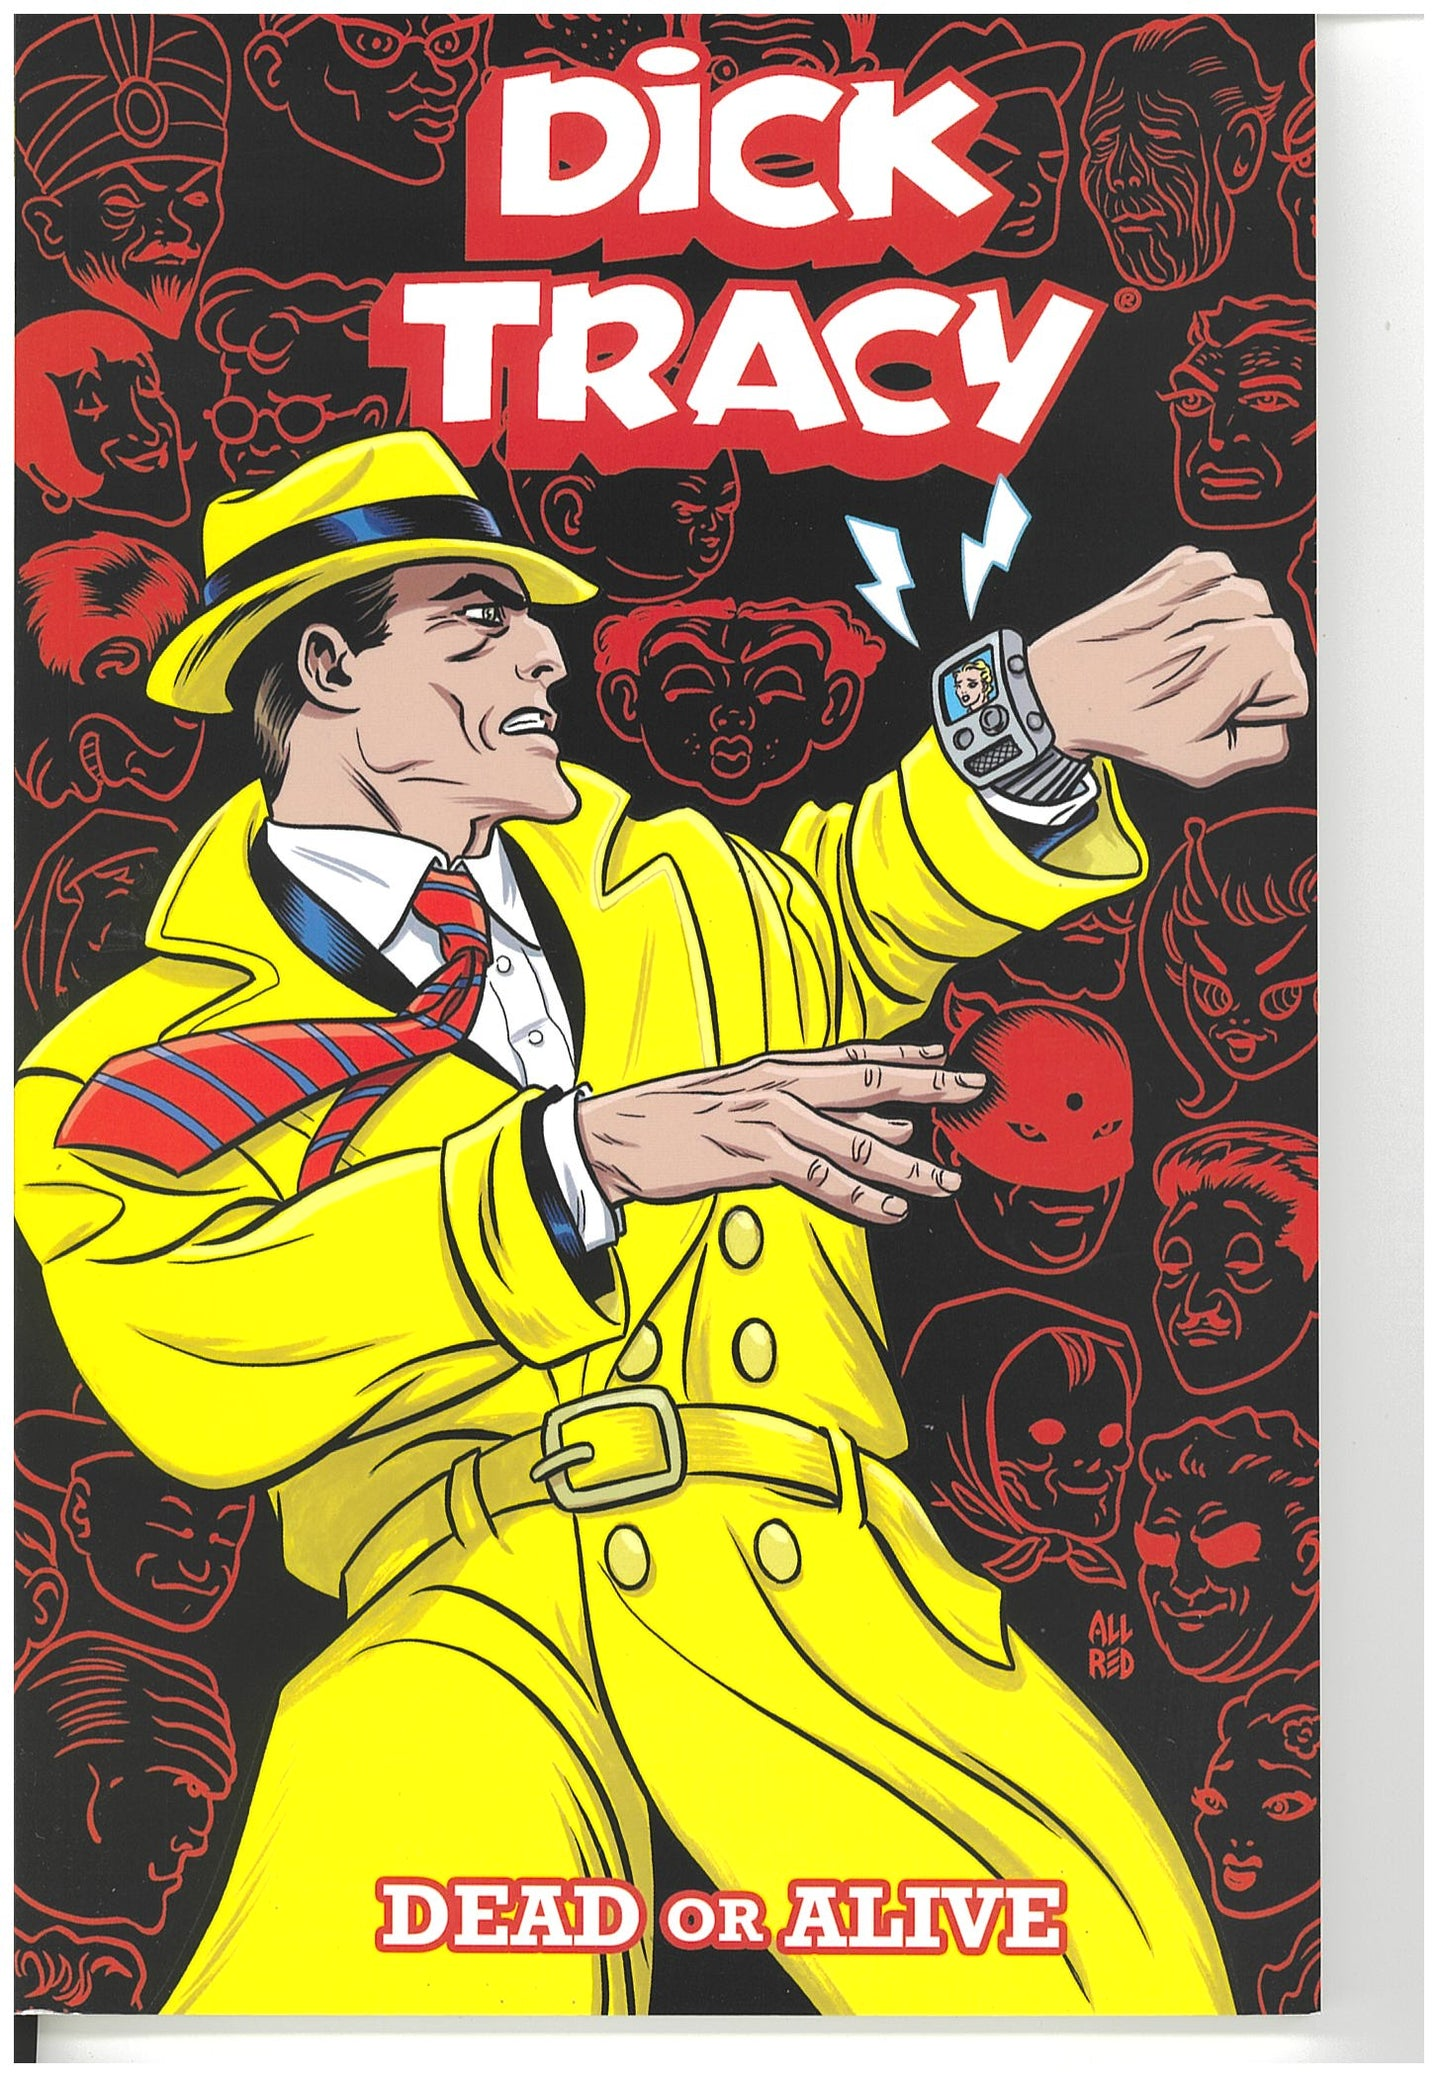 Dick Tracy Dead or Alive Trade Paperback 2019